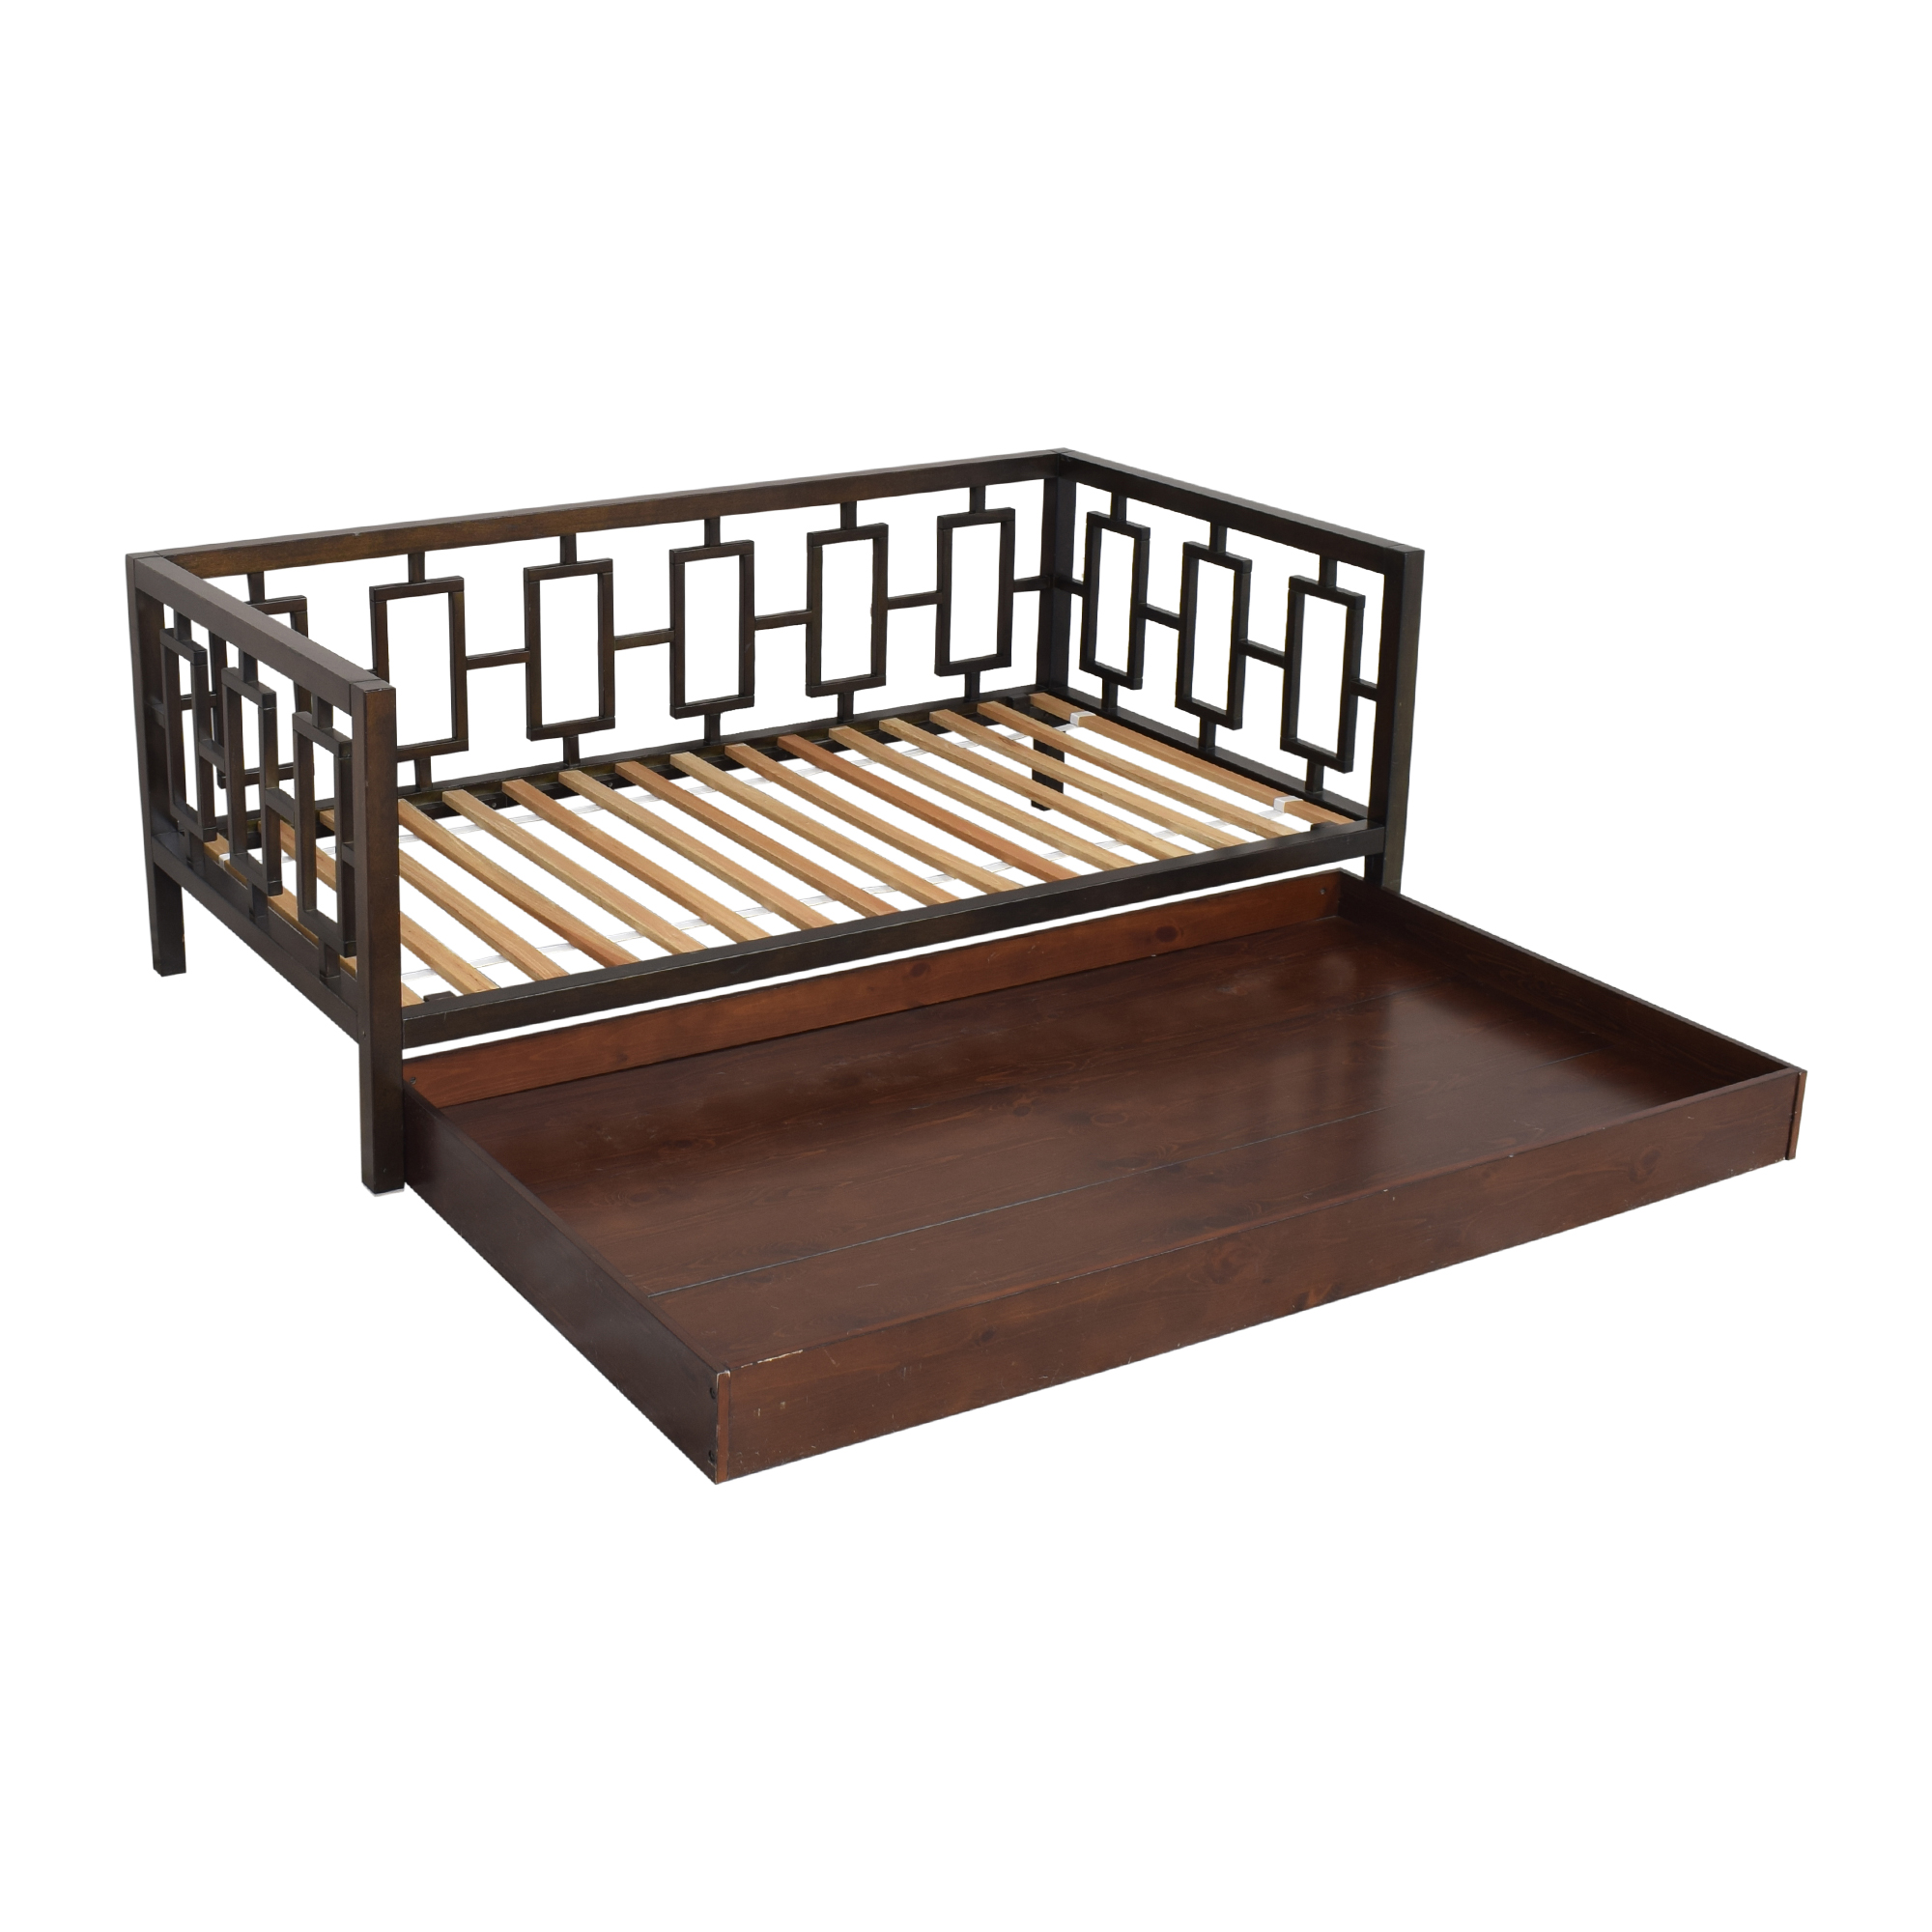 Pottery Barn Teen Pottery Barn Teen Twin Daybed with Trundle second hand